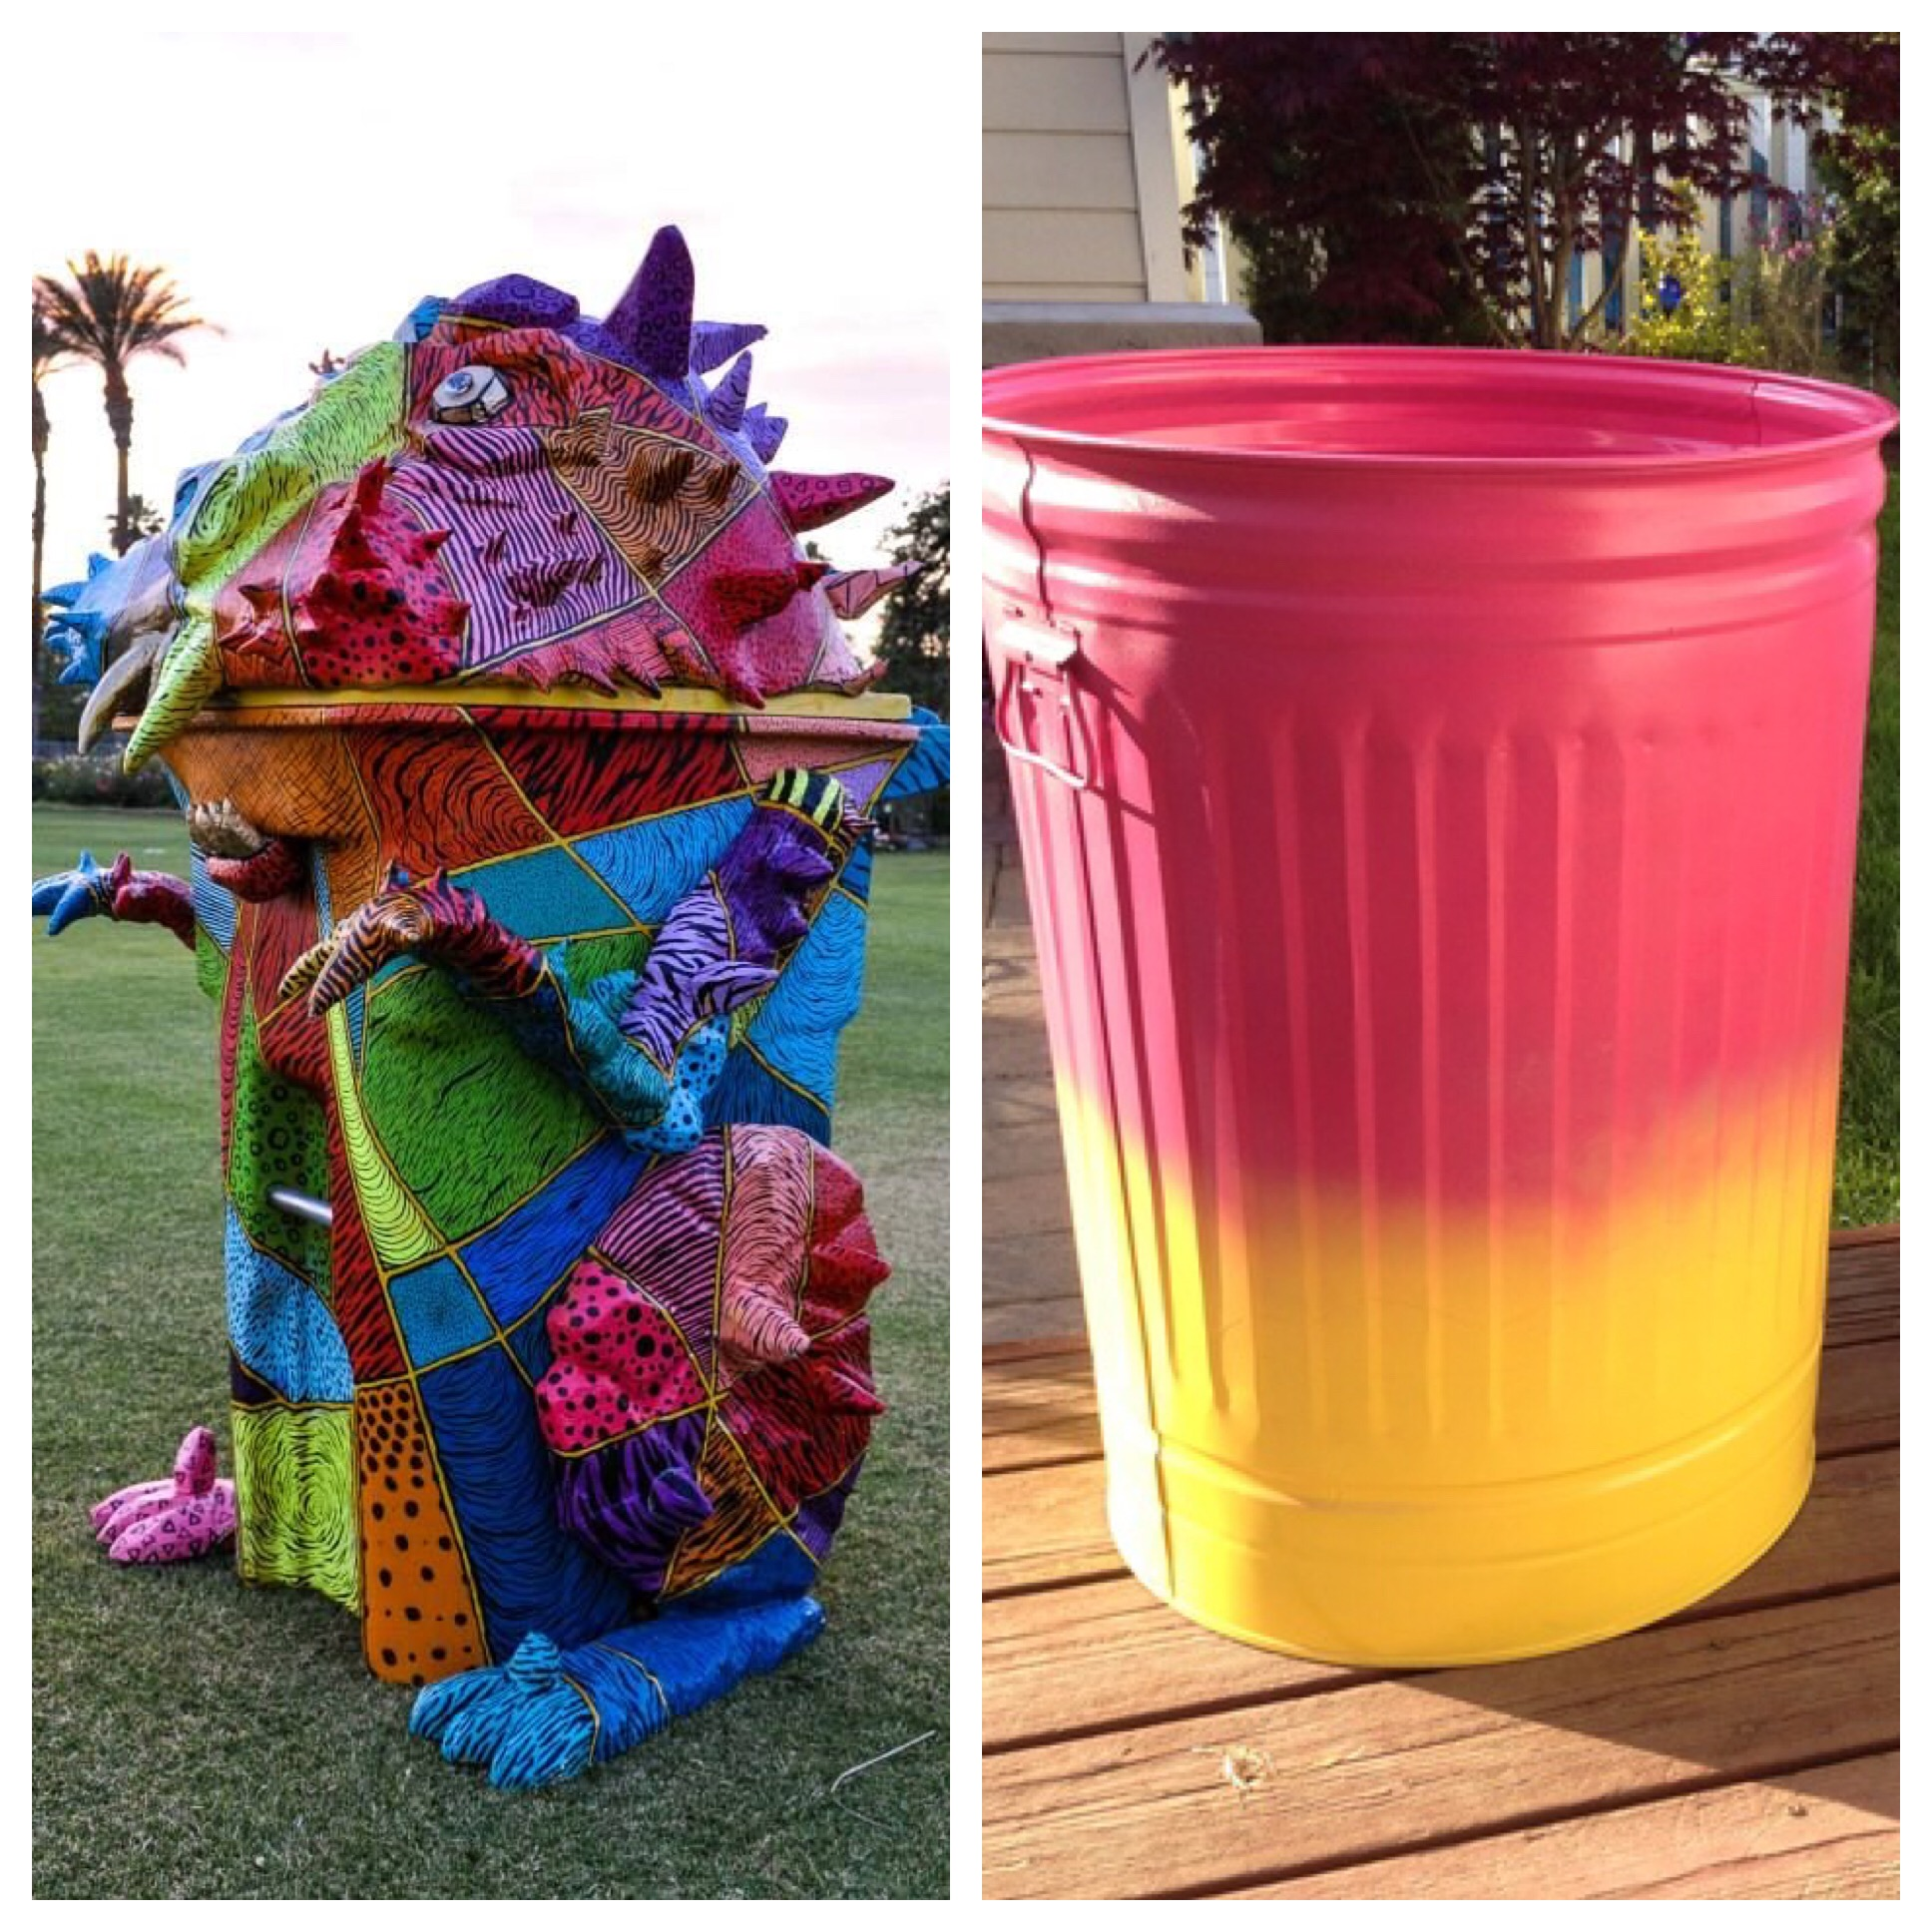 Enneagram 4 Expectation vs. Reality - Emotional Garbage Bin